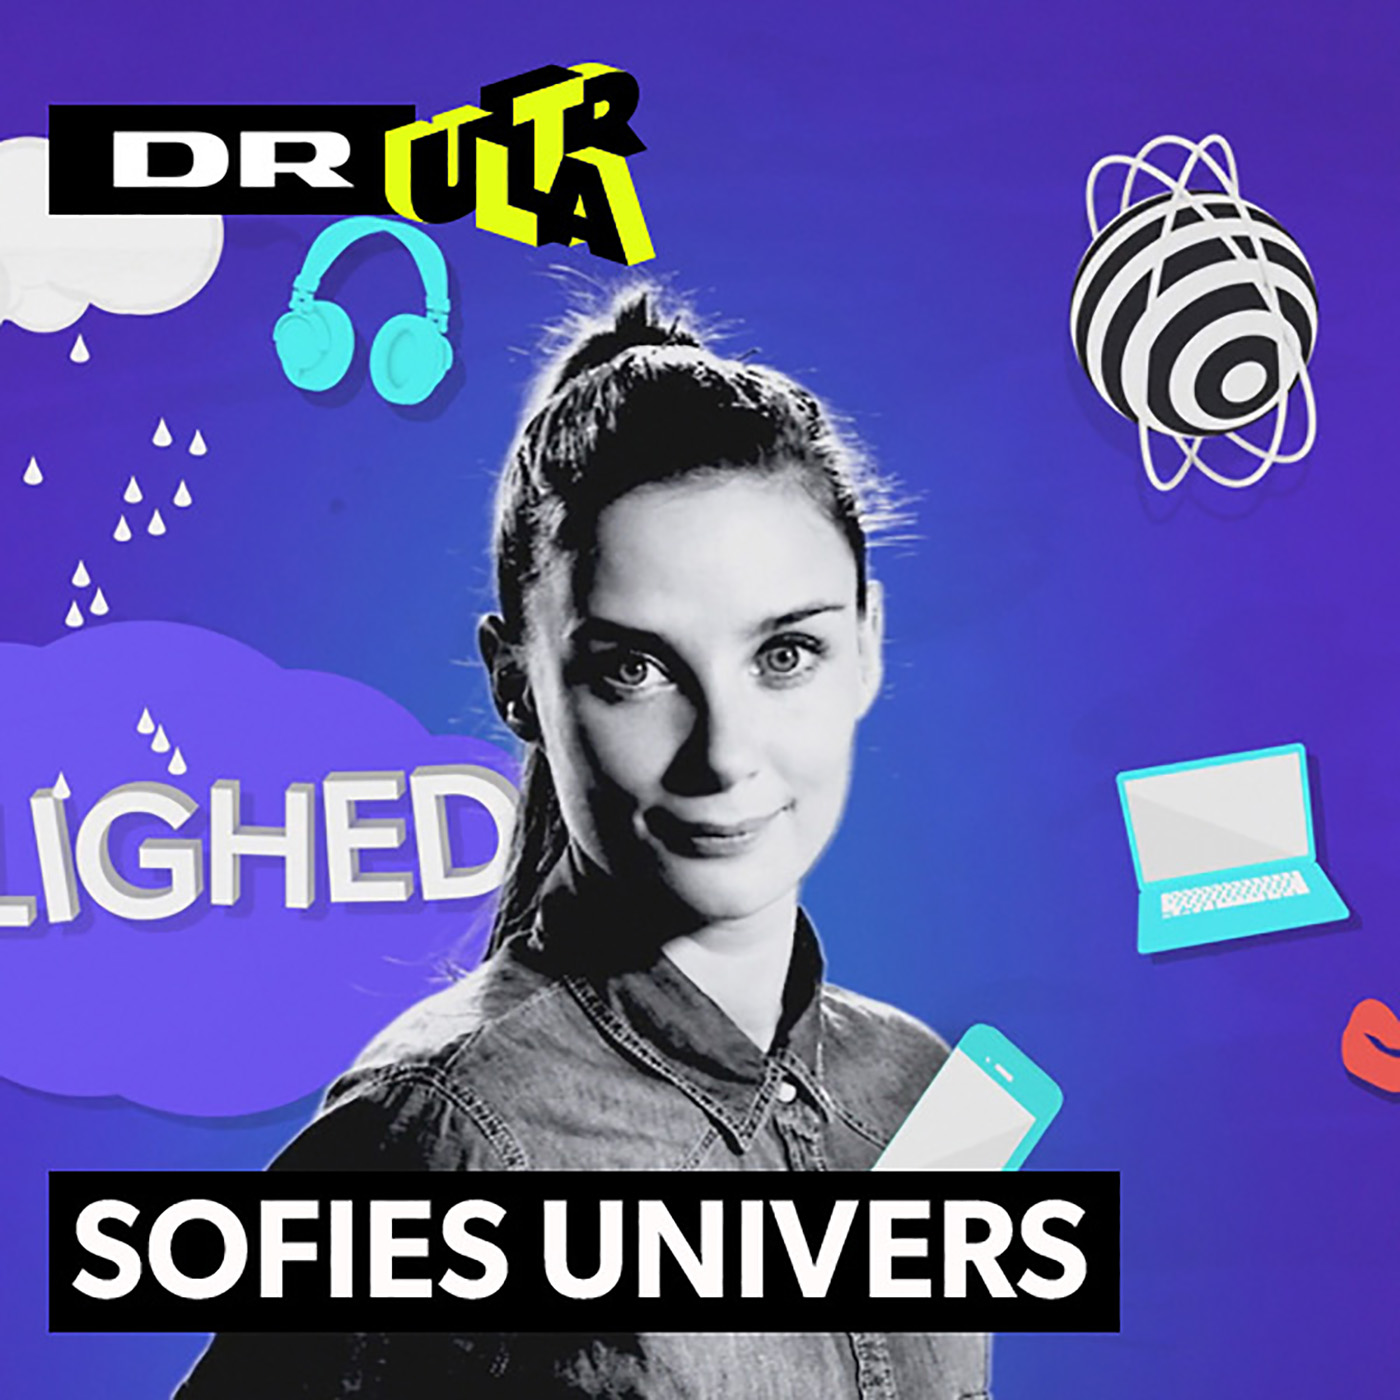 SOFIES UNIVERS (TV)